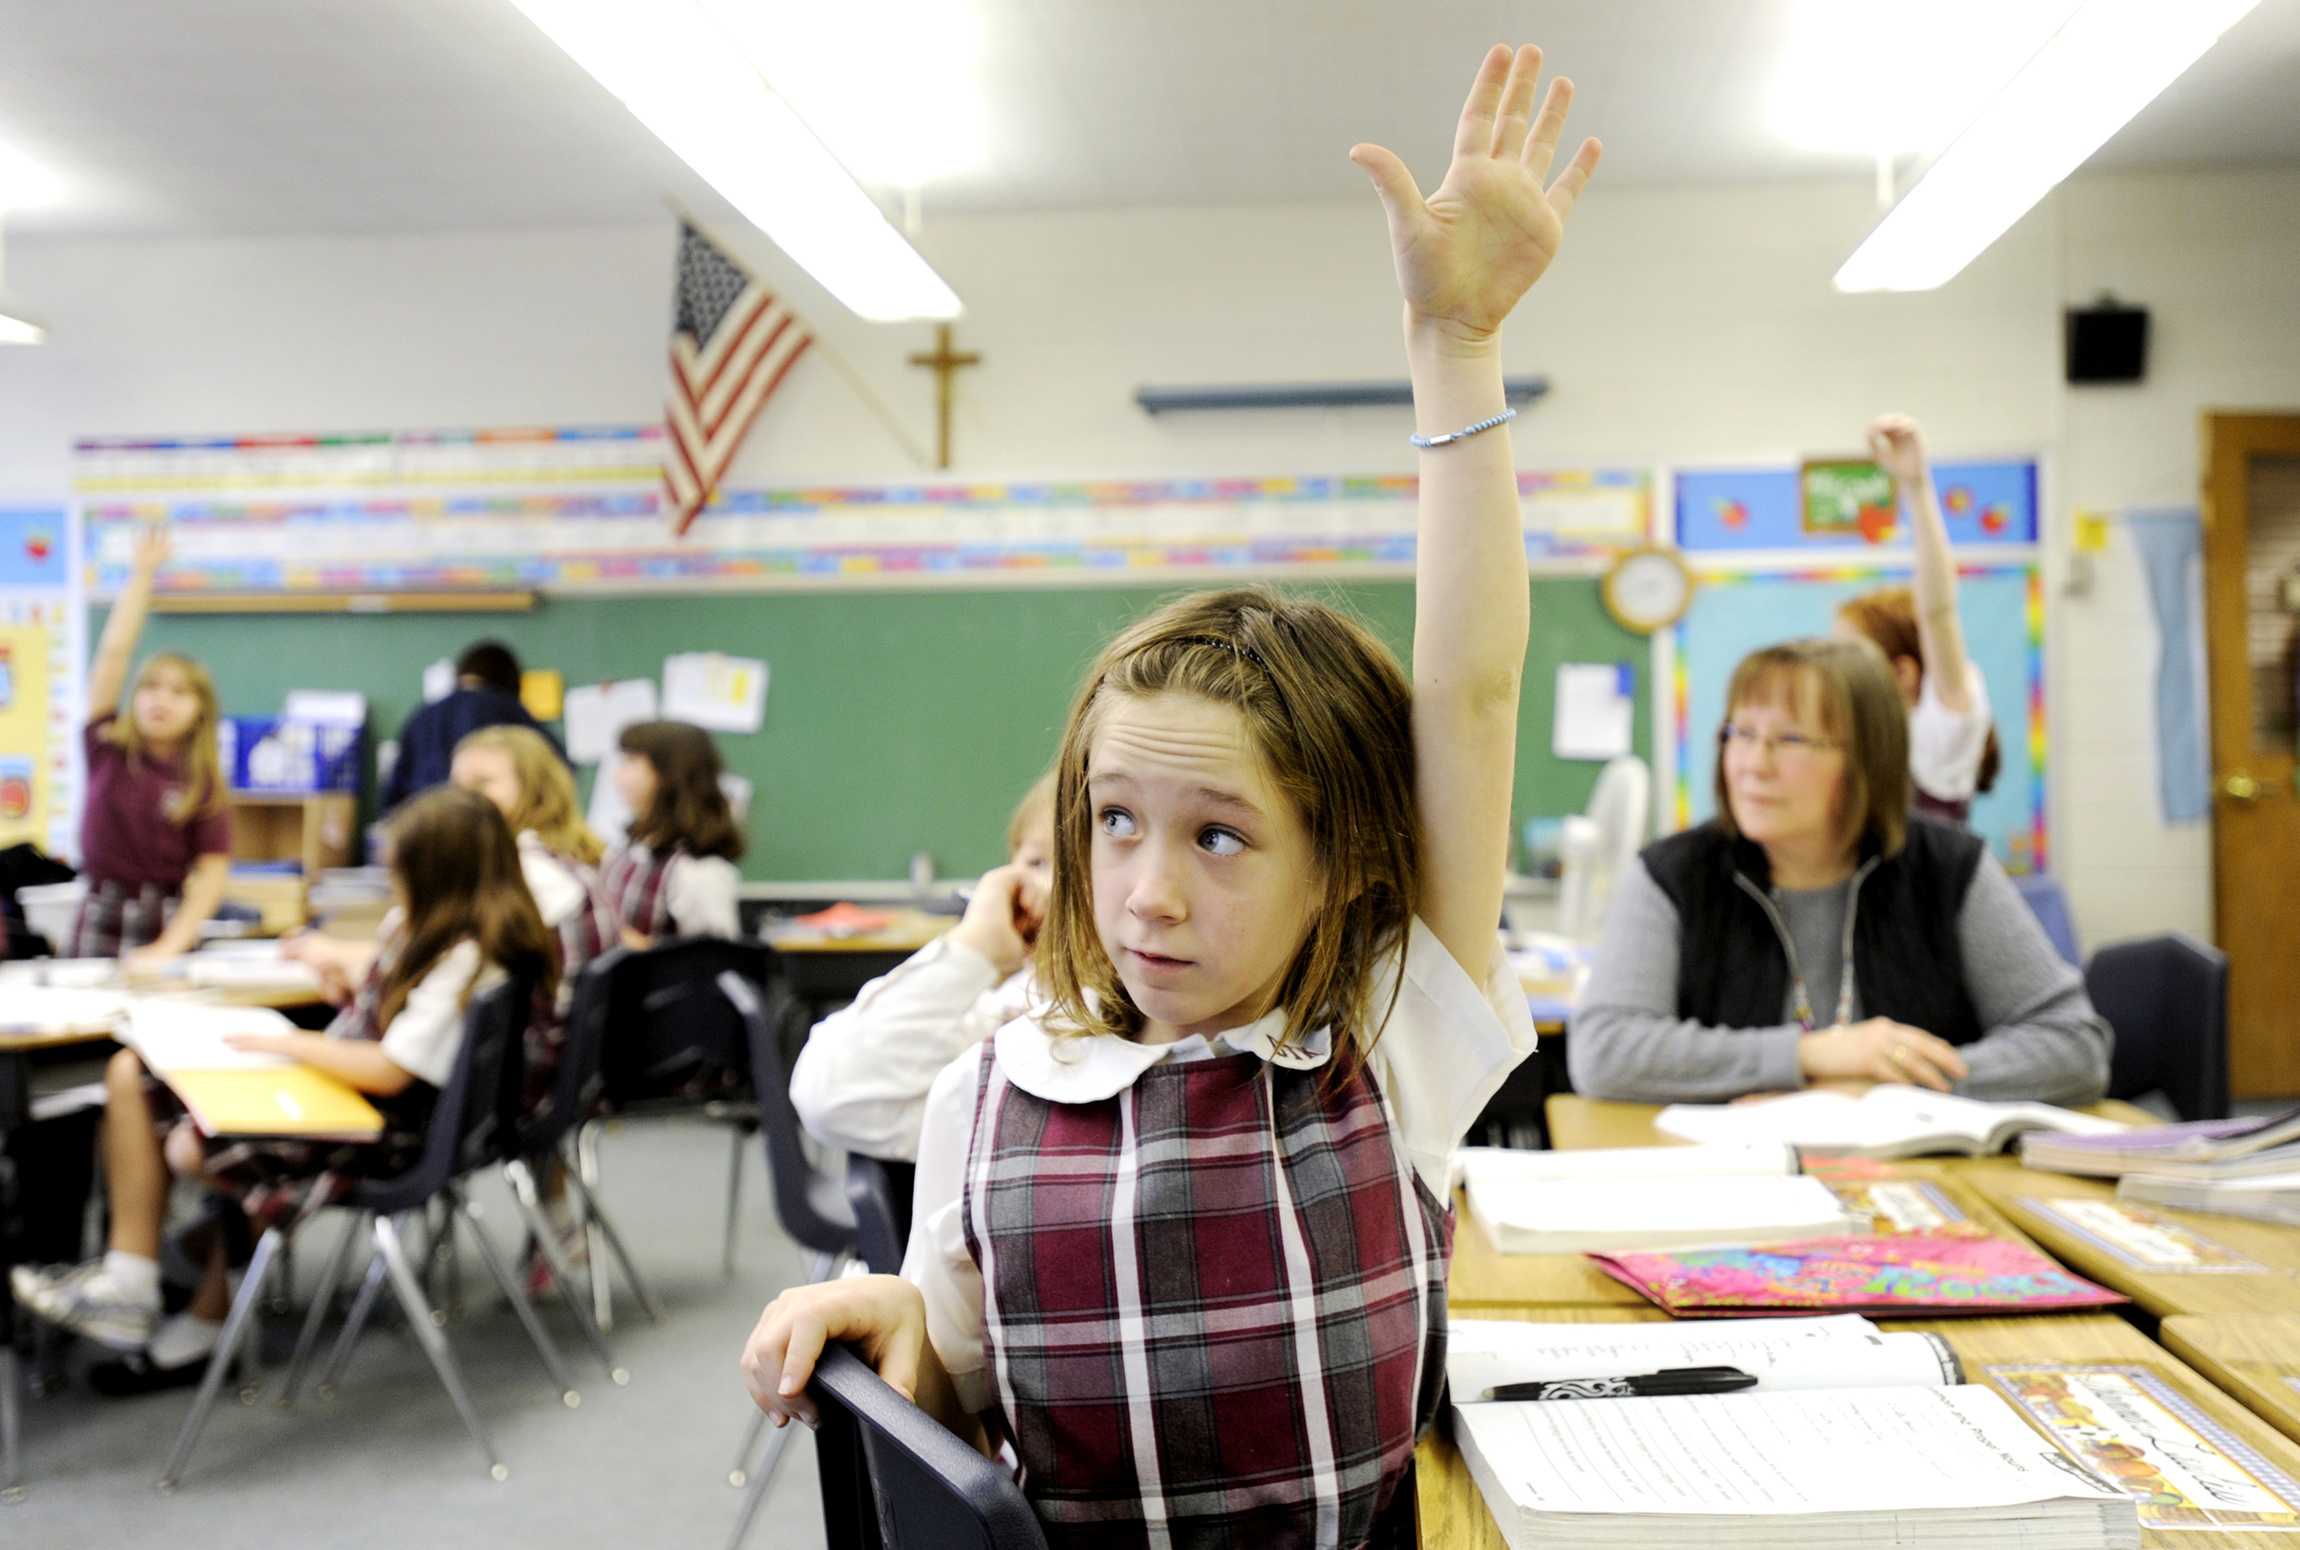 Without Catholic schools, 'school choice' is no choice at all